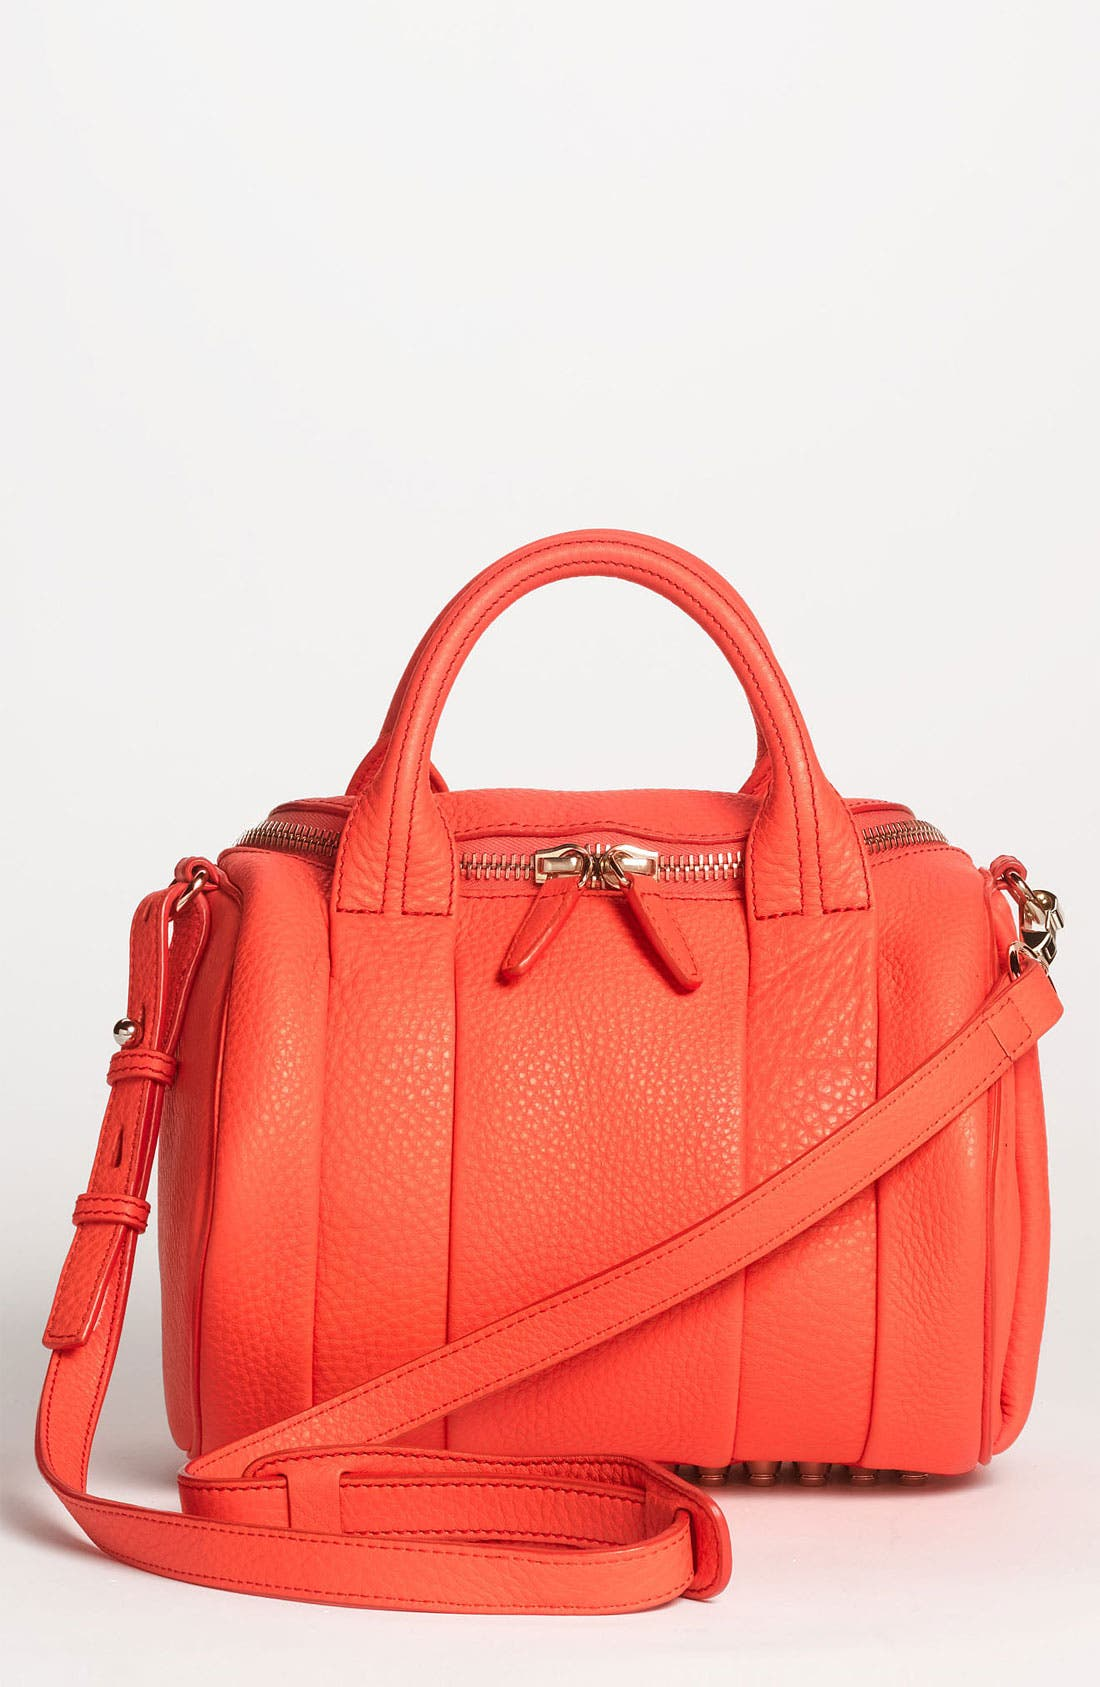 Alternate Image 1 Selected - Alexander Wang 'Rockie' Leather Satchel